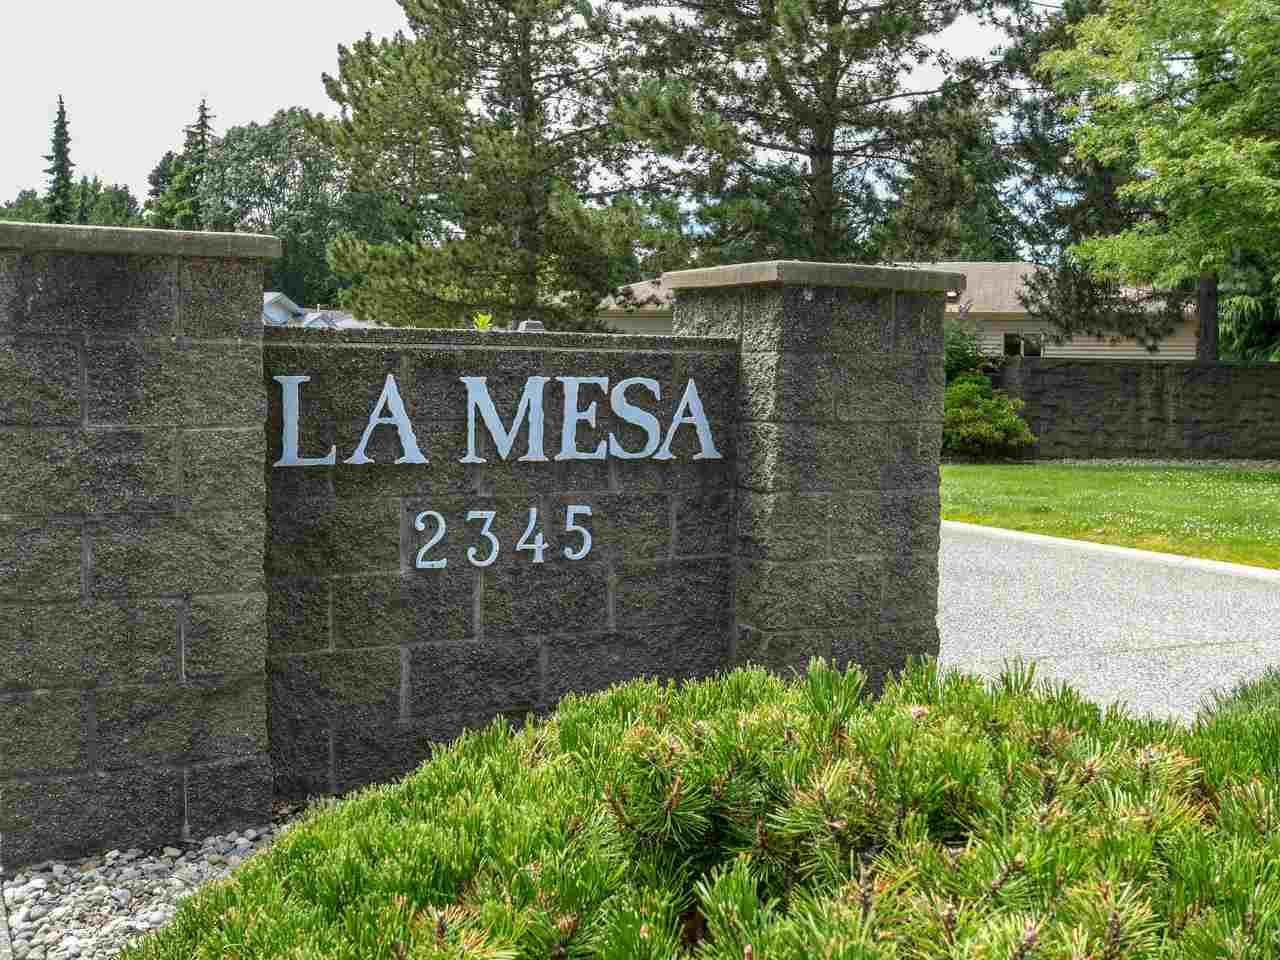 La Mesa! Fabulous 55+ gated community in Sunny South Surrey within walking distance to shops and transit. This beautiful detached home is 1,336 sqft, has been meticulously maintained and is in a quiet location in the complex. Rare DOUBLE GARAGE with plenty of room for storage, fenced yard with southwest facing patio and garden. Very nice layout featuring a large living room with over sized bay windows, gas fireplace and a full size dining room that will accommodate large table & hutch. The kitchen has newer appliances loads of cupboard space, pull out drawers and a separate eating area. Vaulted ceilings and skylights, spacious bedrooms, full size laundry room & heated crawl space. Remarkable value for a rancher/bungalow.